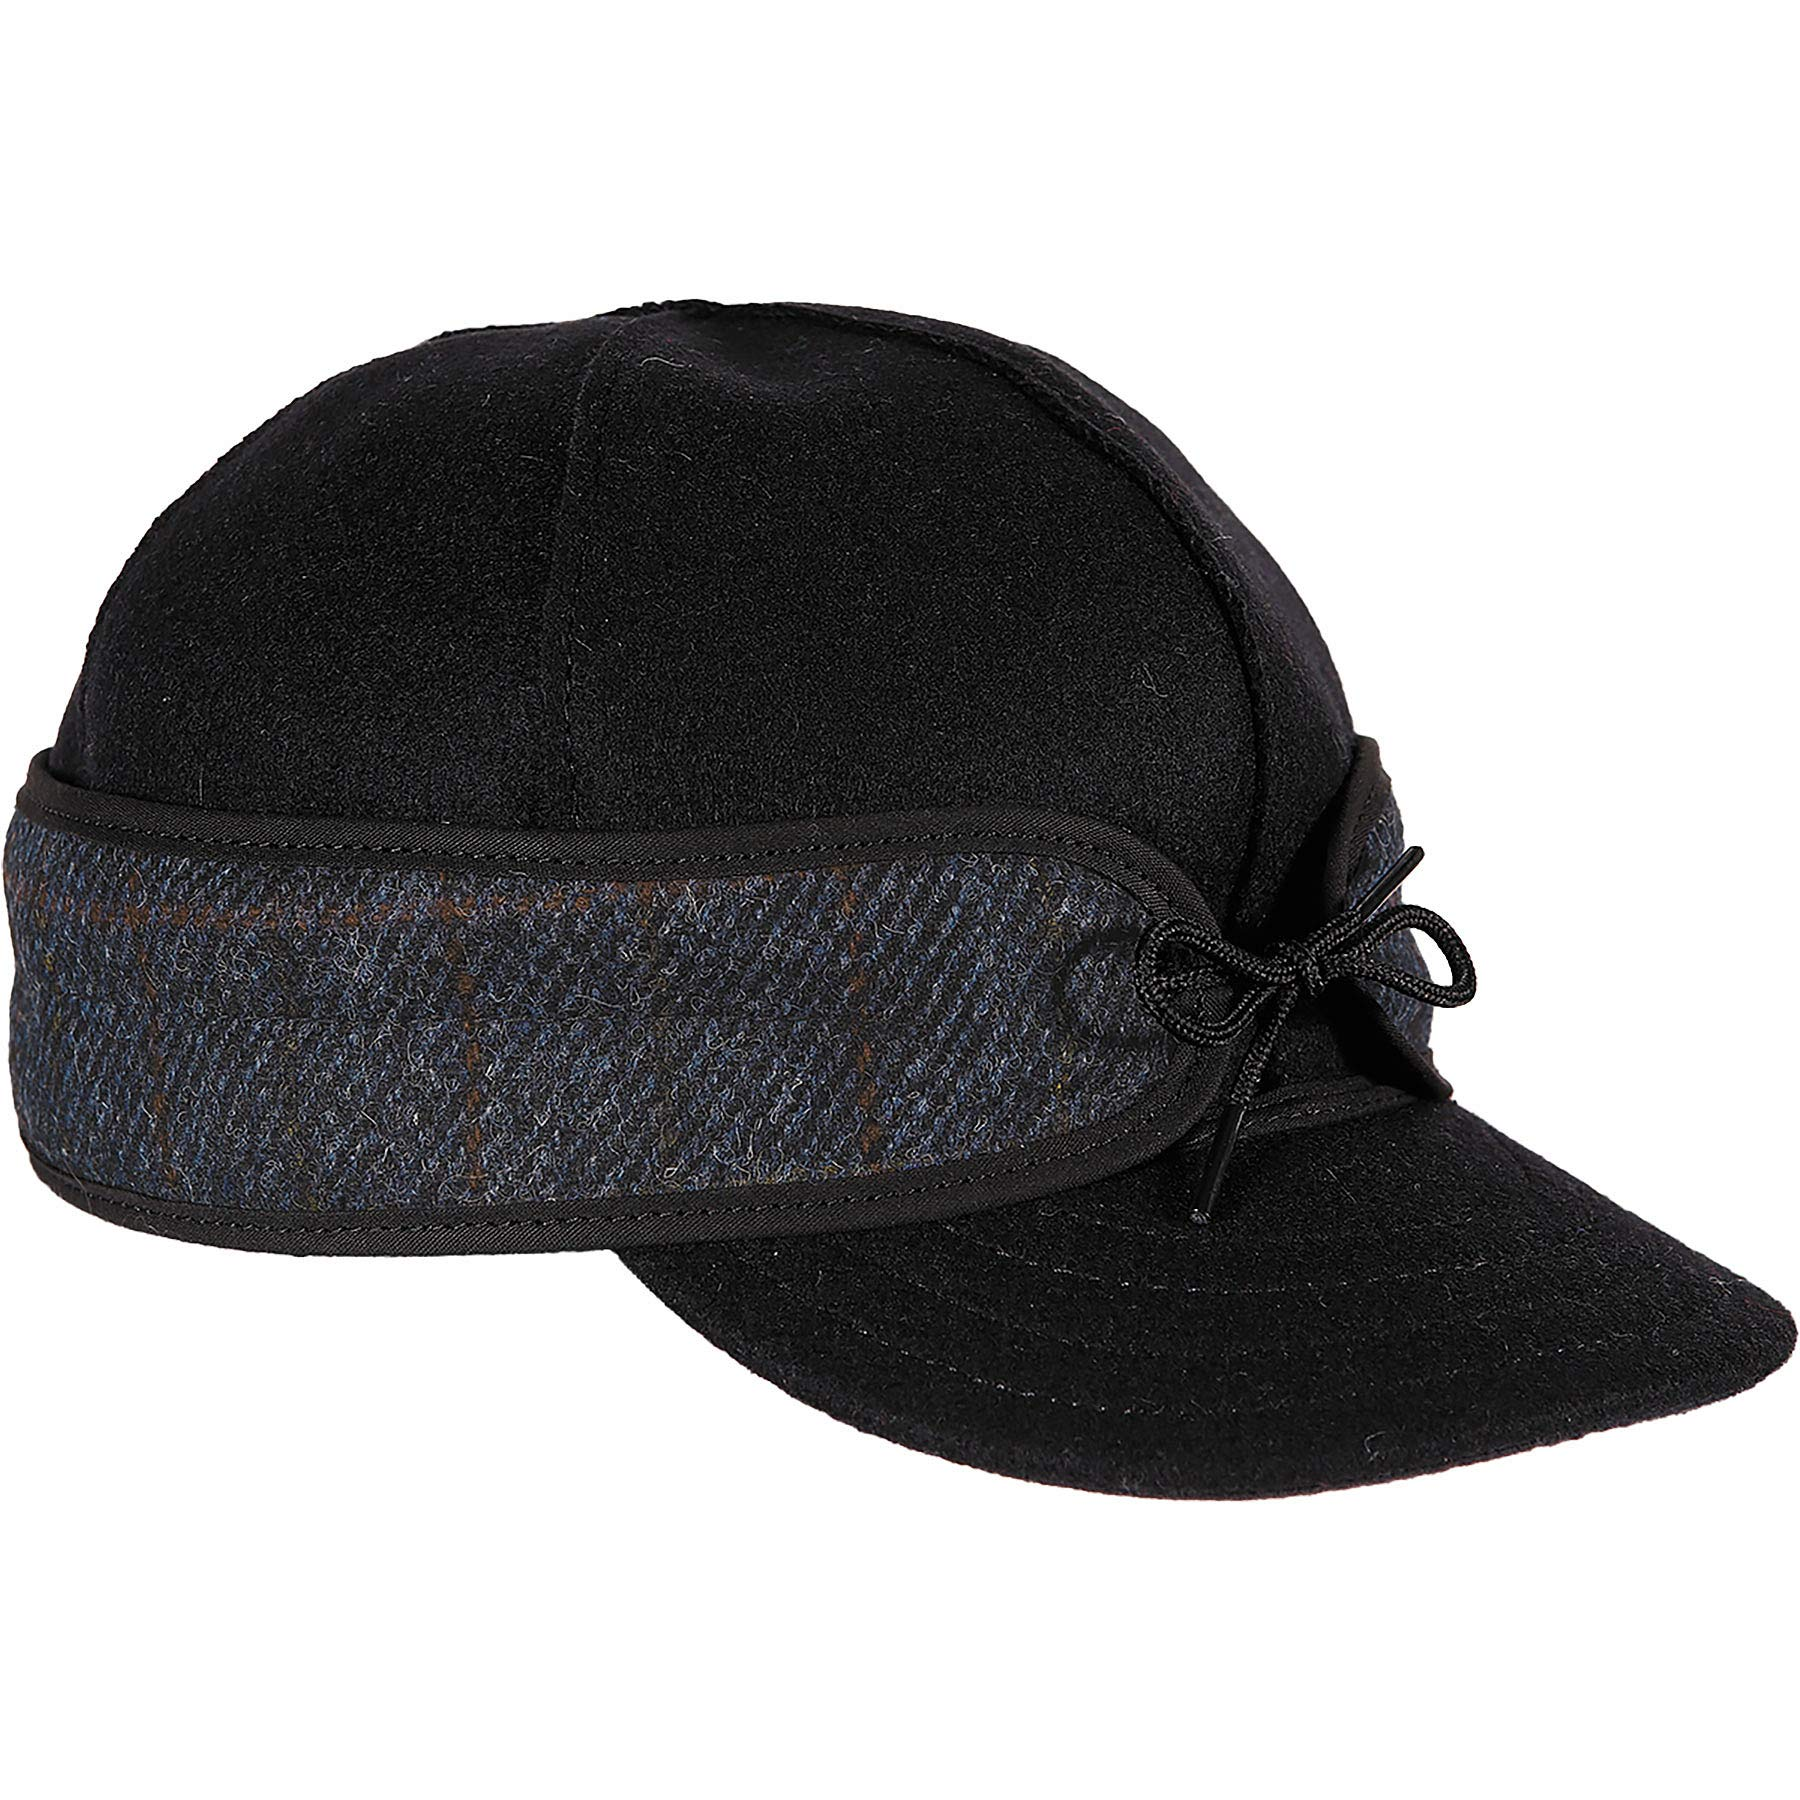 Harris Tweed Original Stormy Kromer Cap by Stormy Kromer